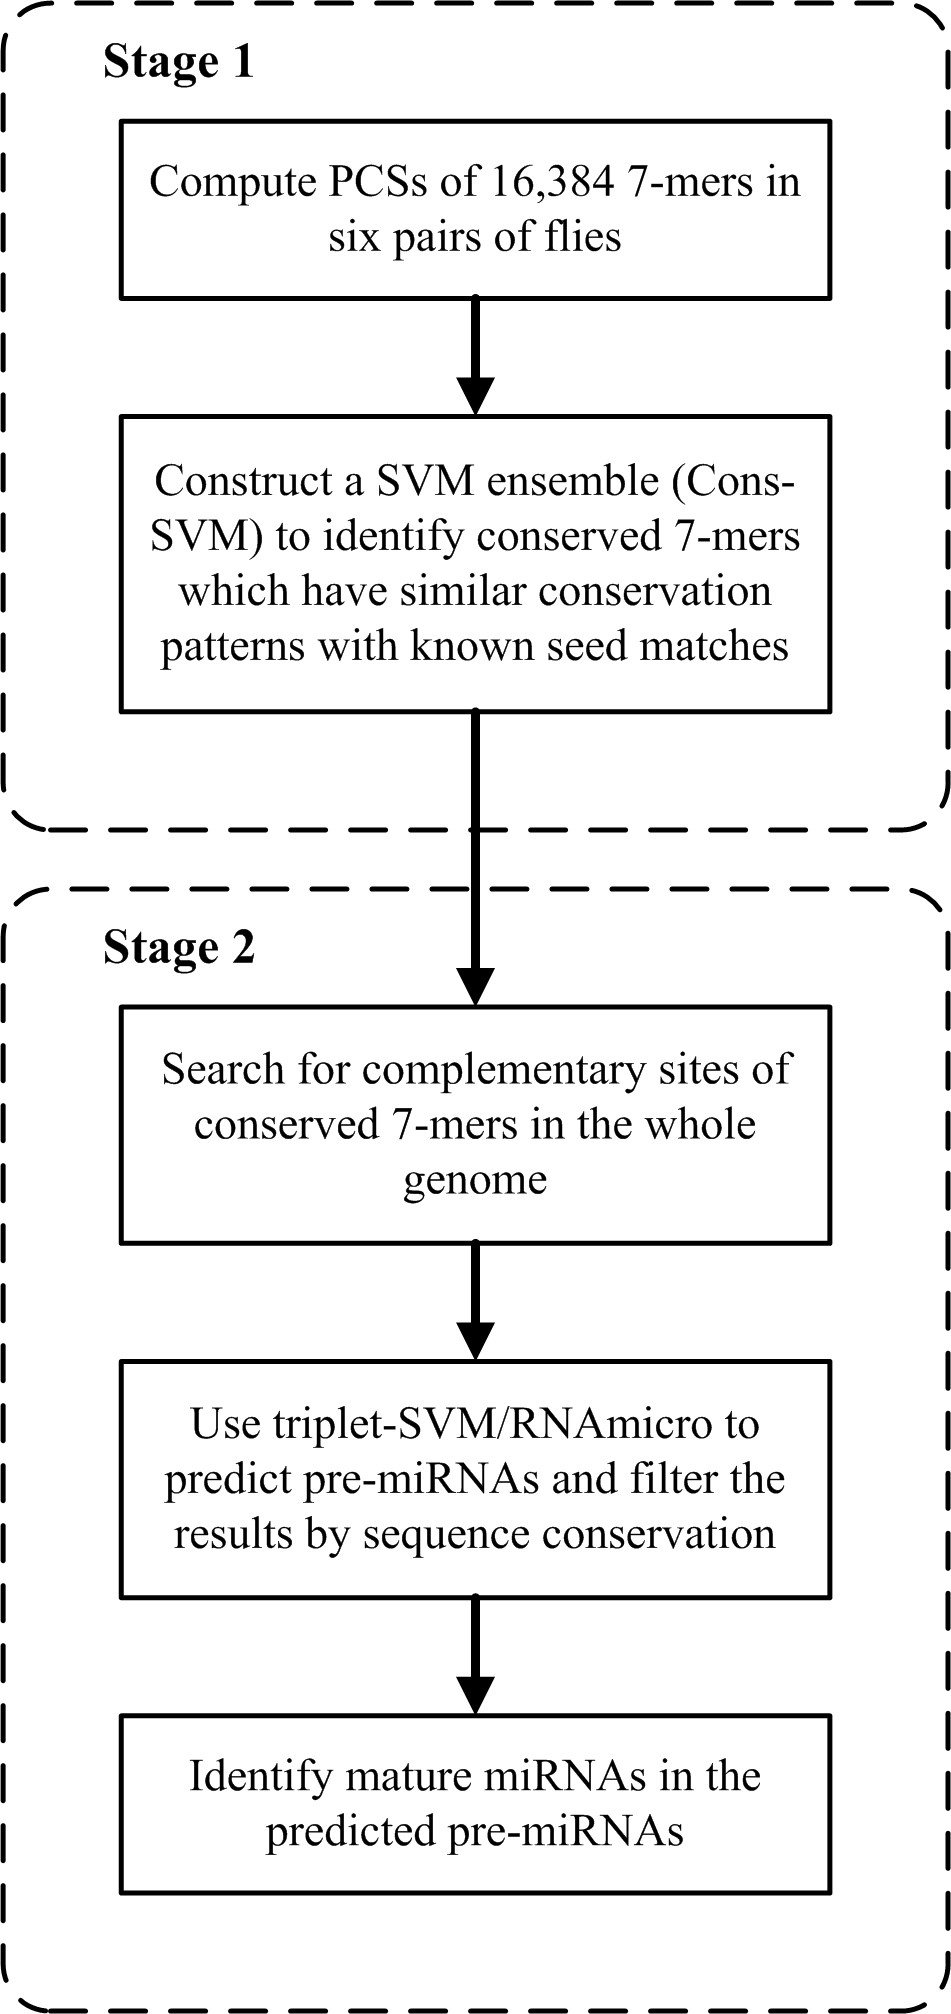 https://static-content.springer.com/image/art%3A10.1186%2F1471-2105-8-432/MediaObjects/12859_2006_Article_1804_Fig1_HTML.jpg